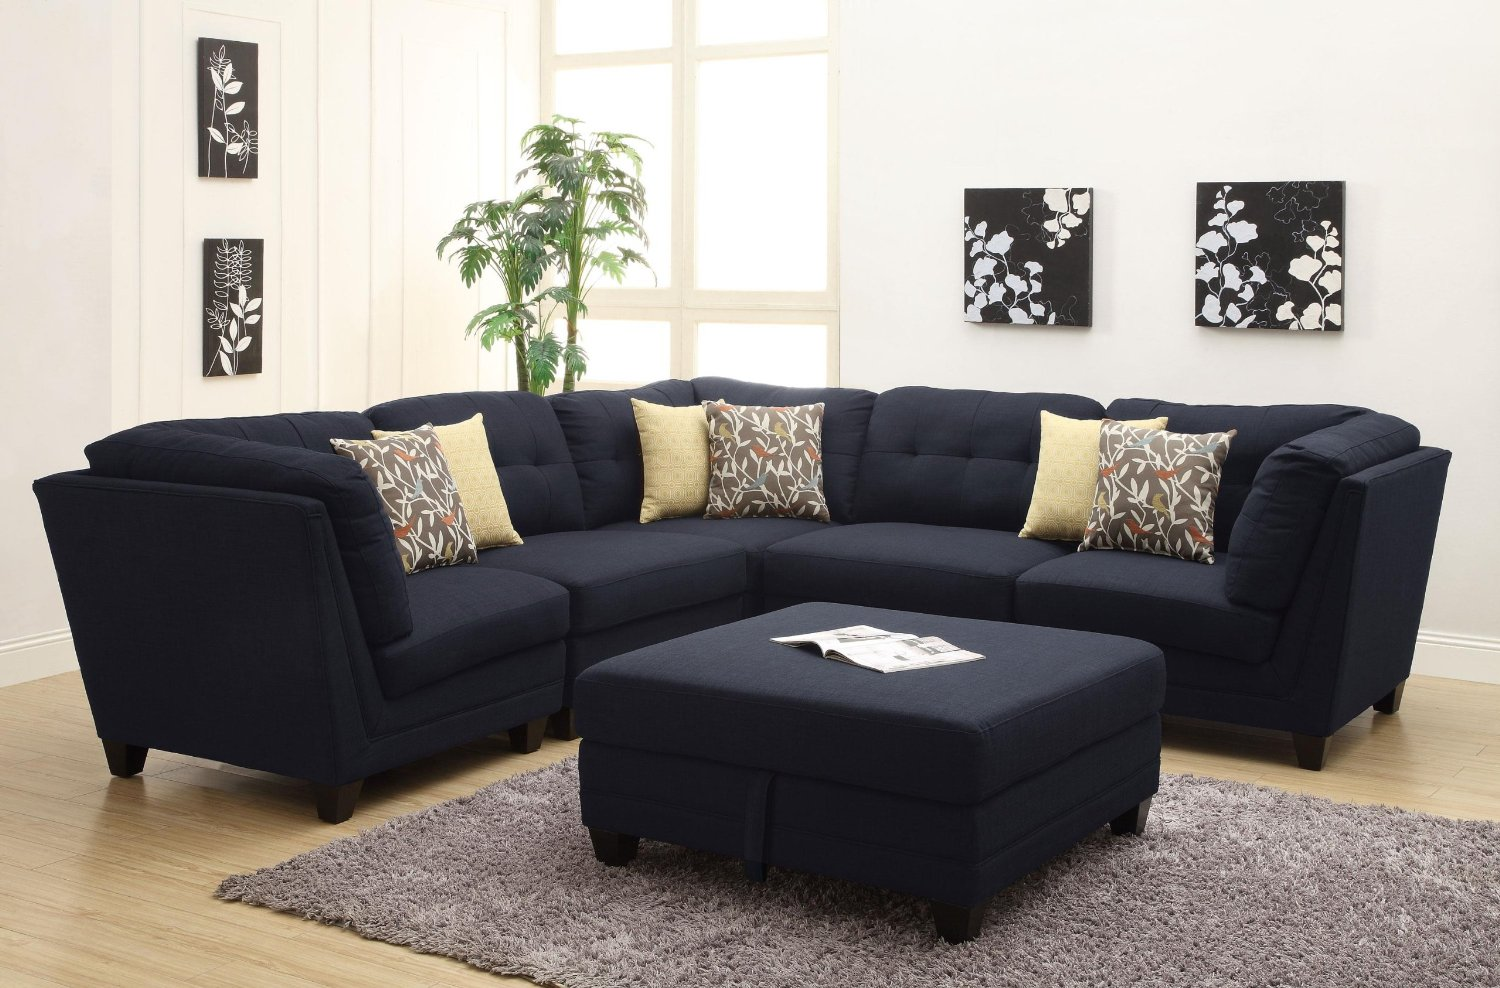 Most comfortable sofas homesfeed - El mejor sofa ...